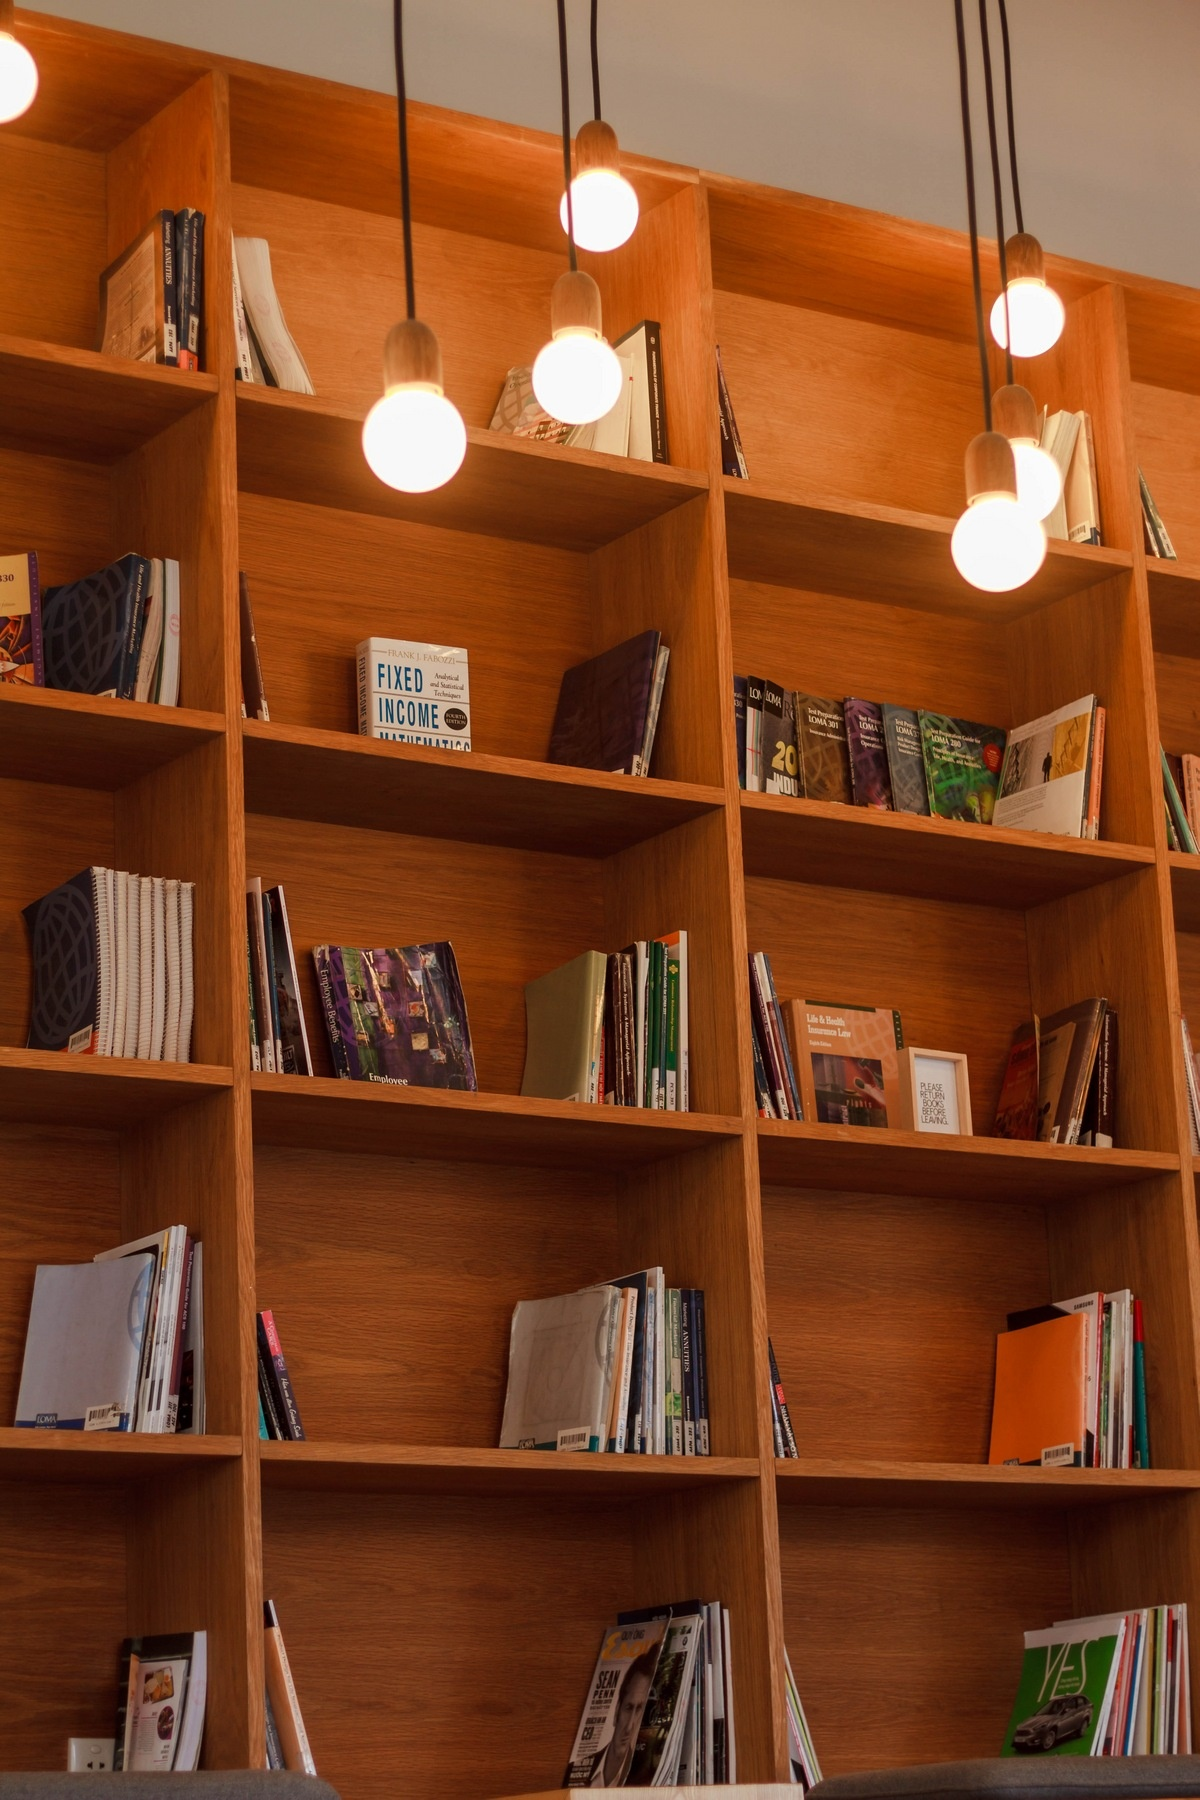 Ways to Decorate Your Bookcase - Install Lighting